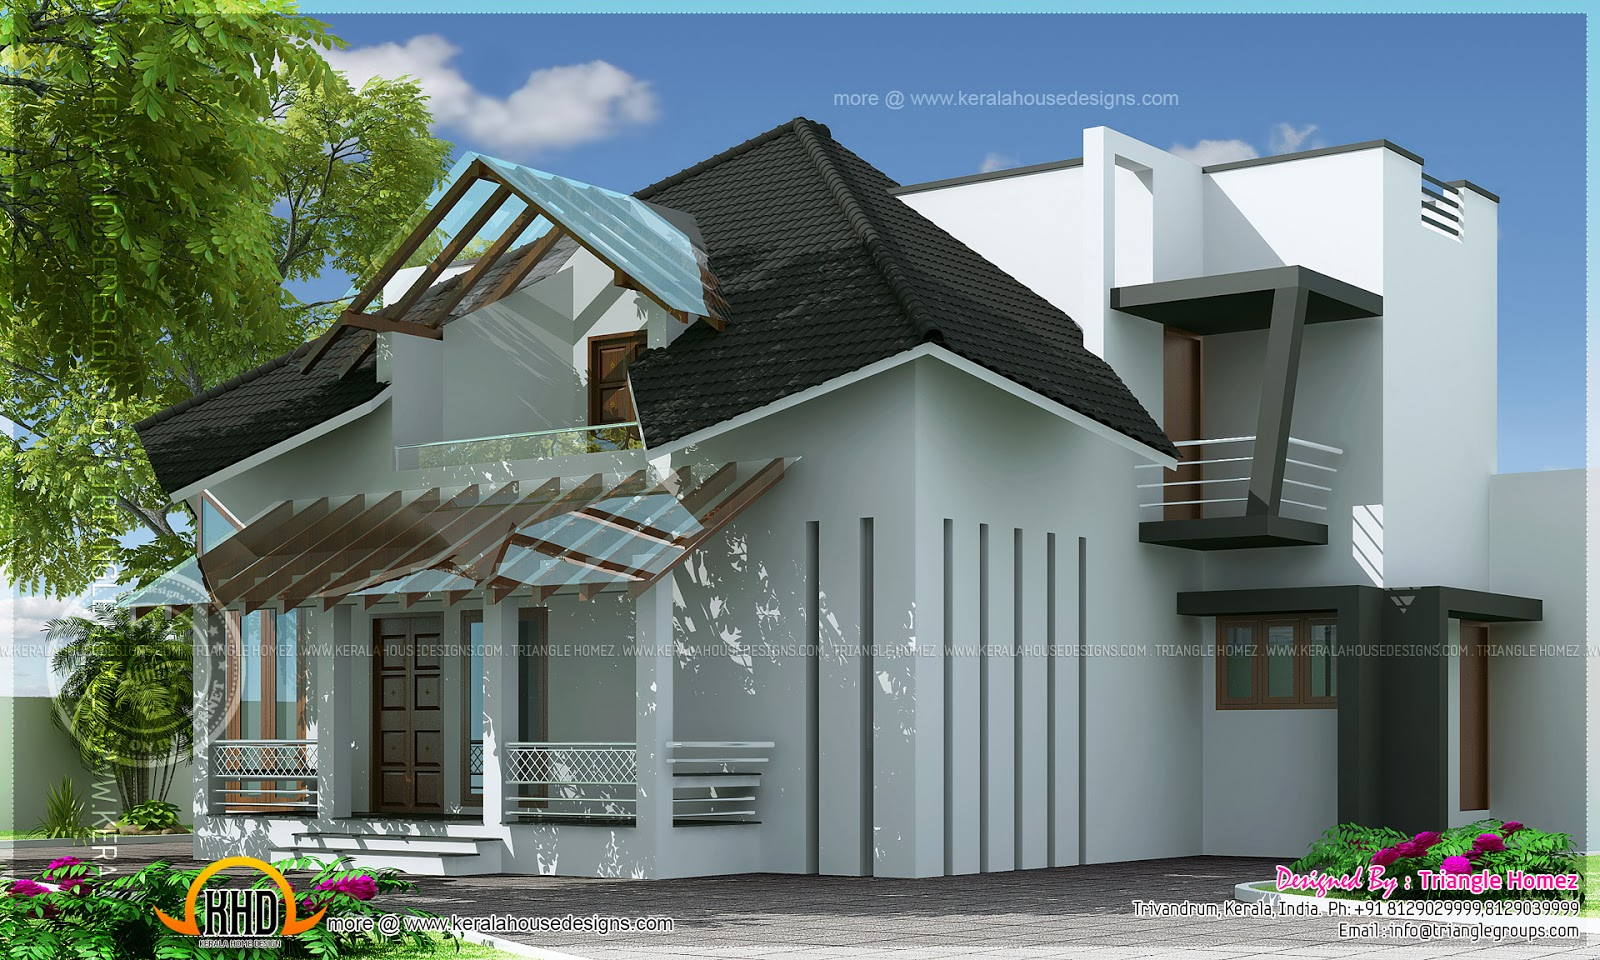 Two faced modern estate bungalow kerala home design and for New bungalow style homes